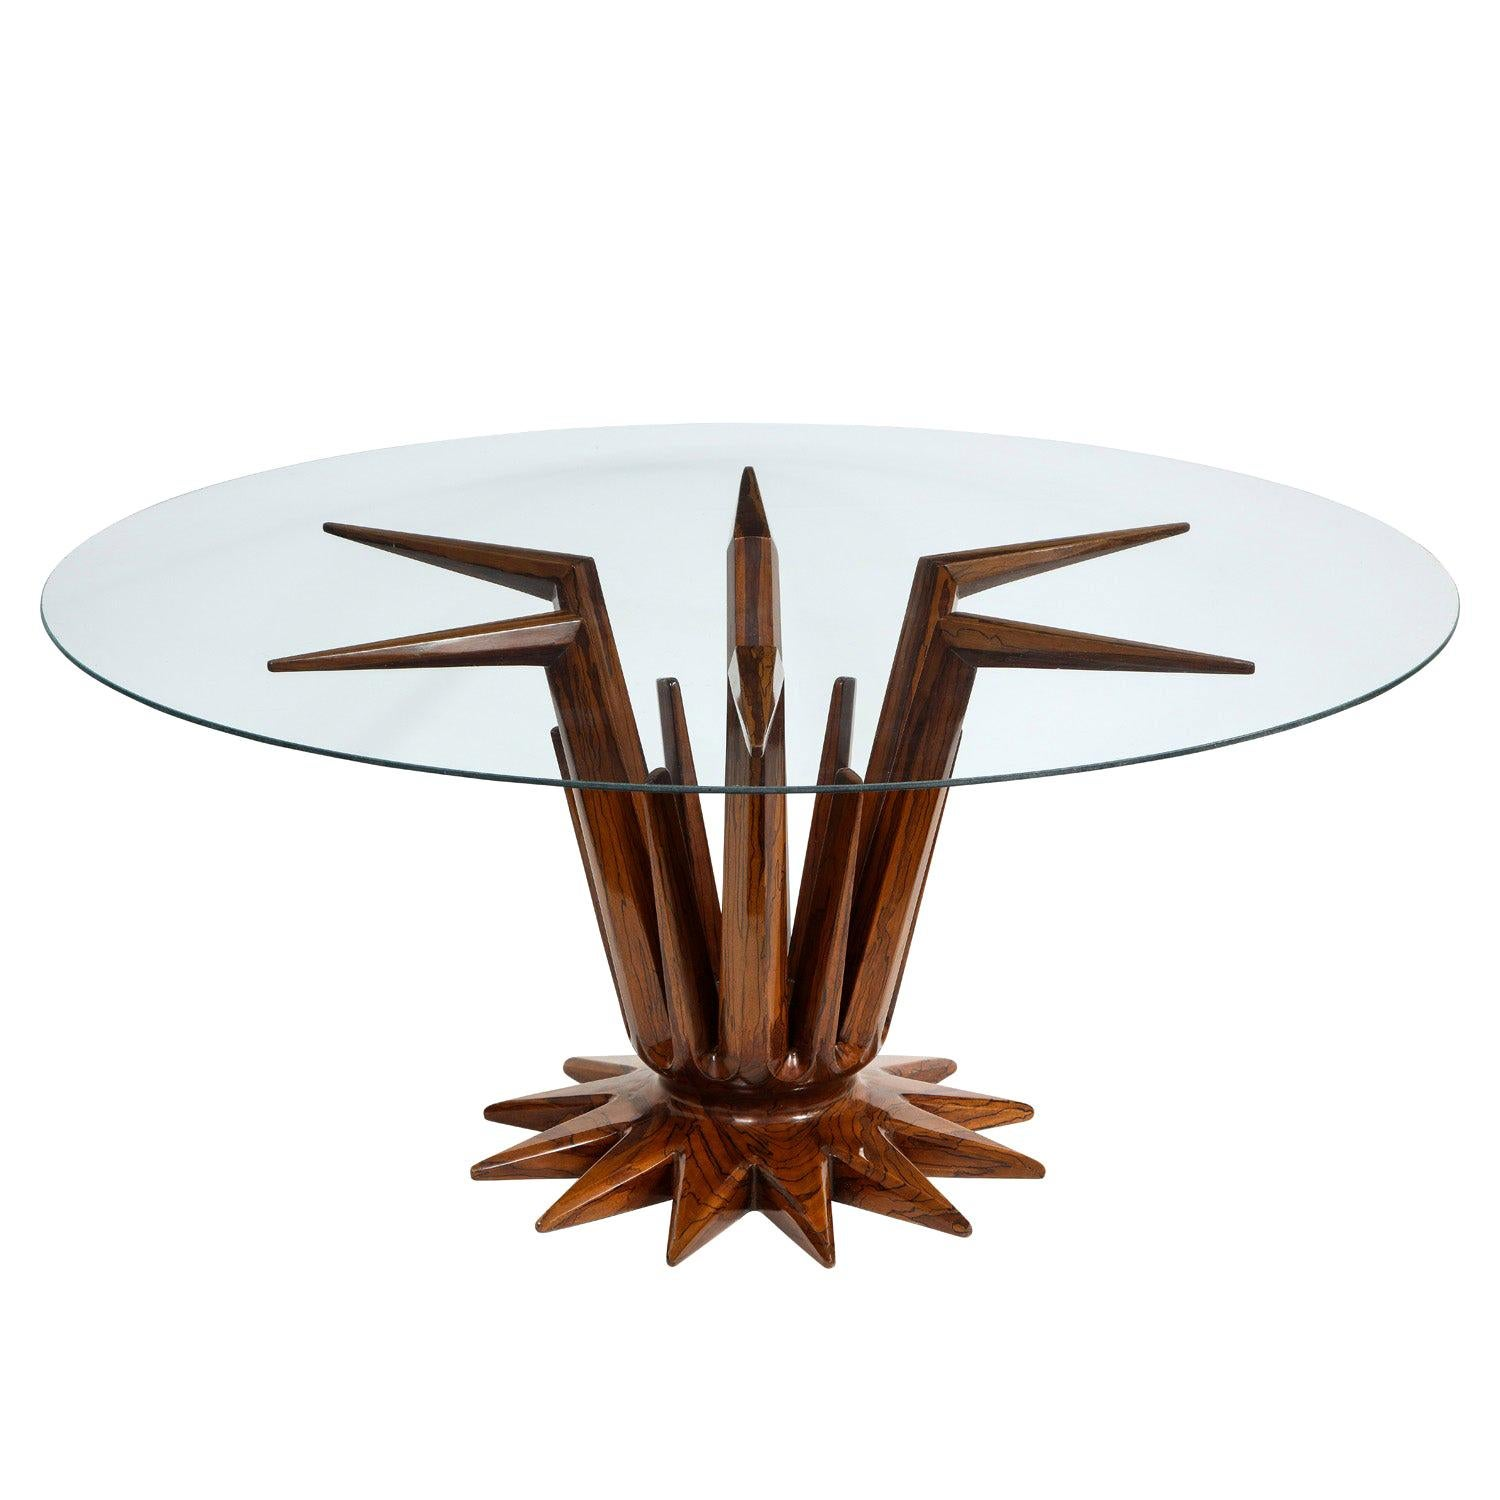 Sculptural Rosewood and Glass Coffee Table, 1950s